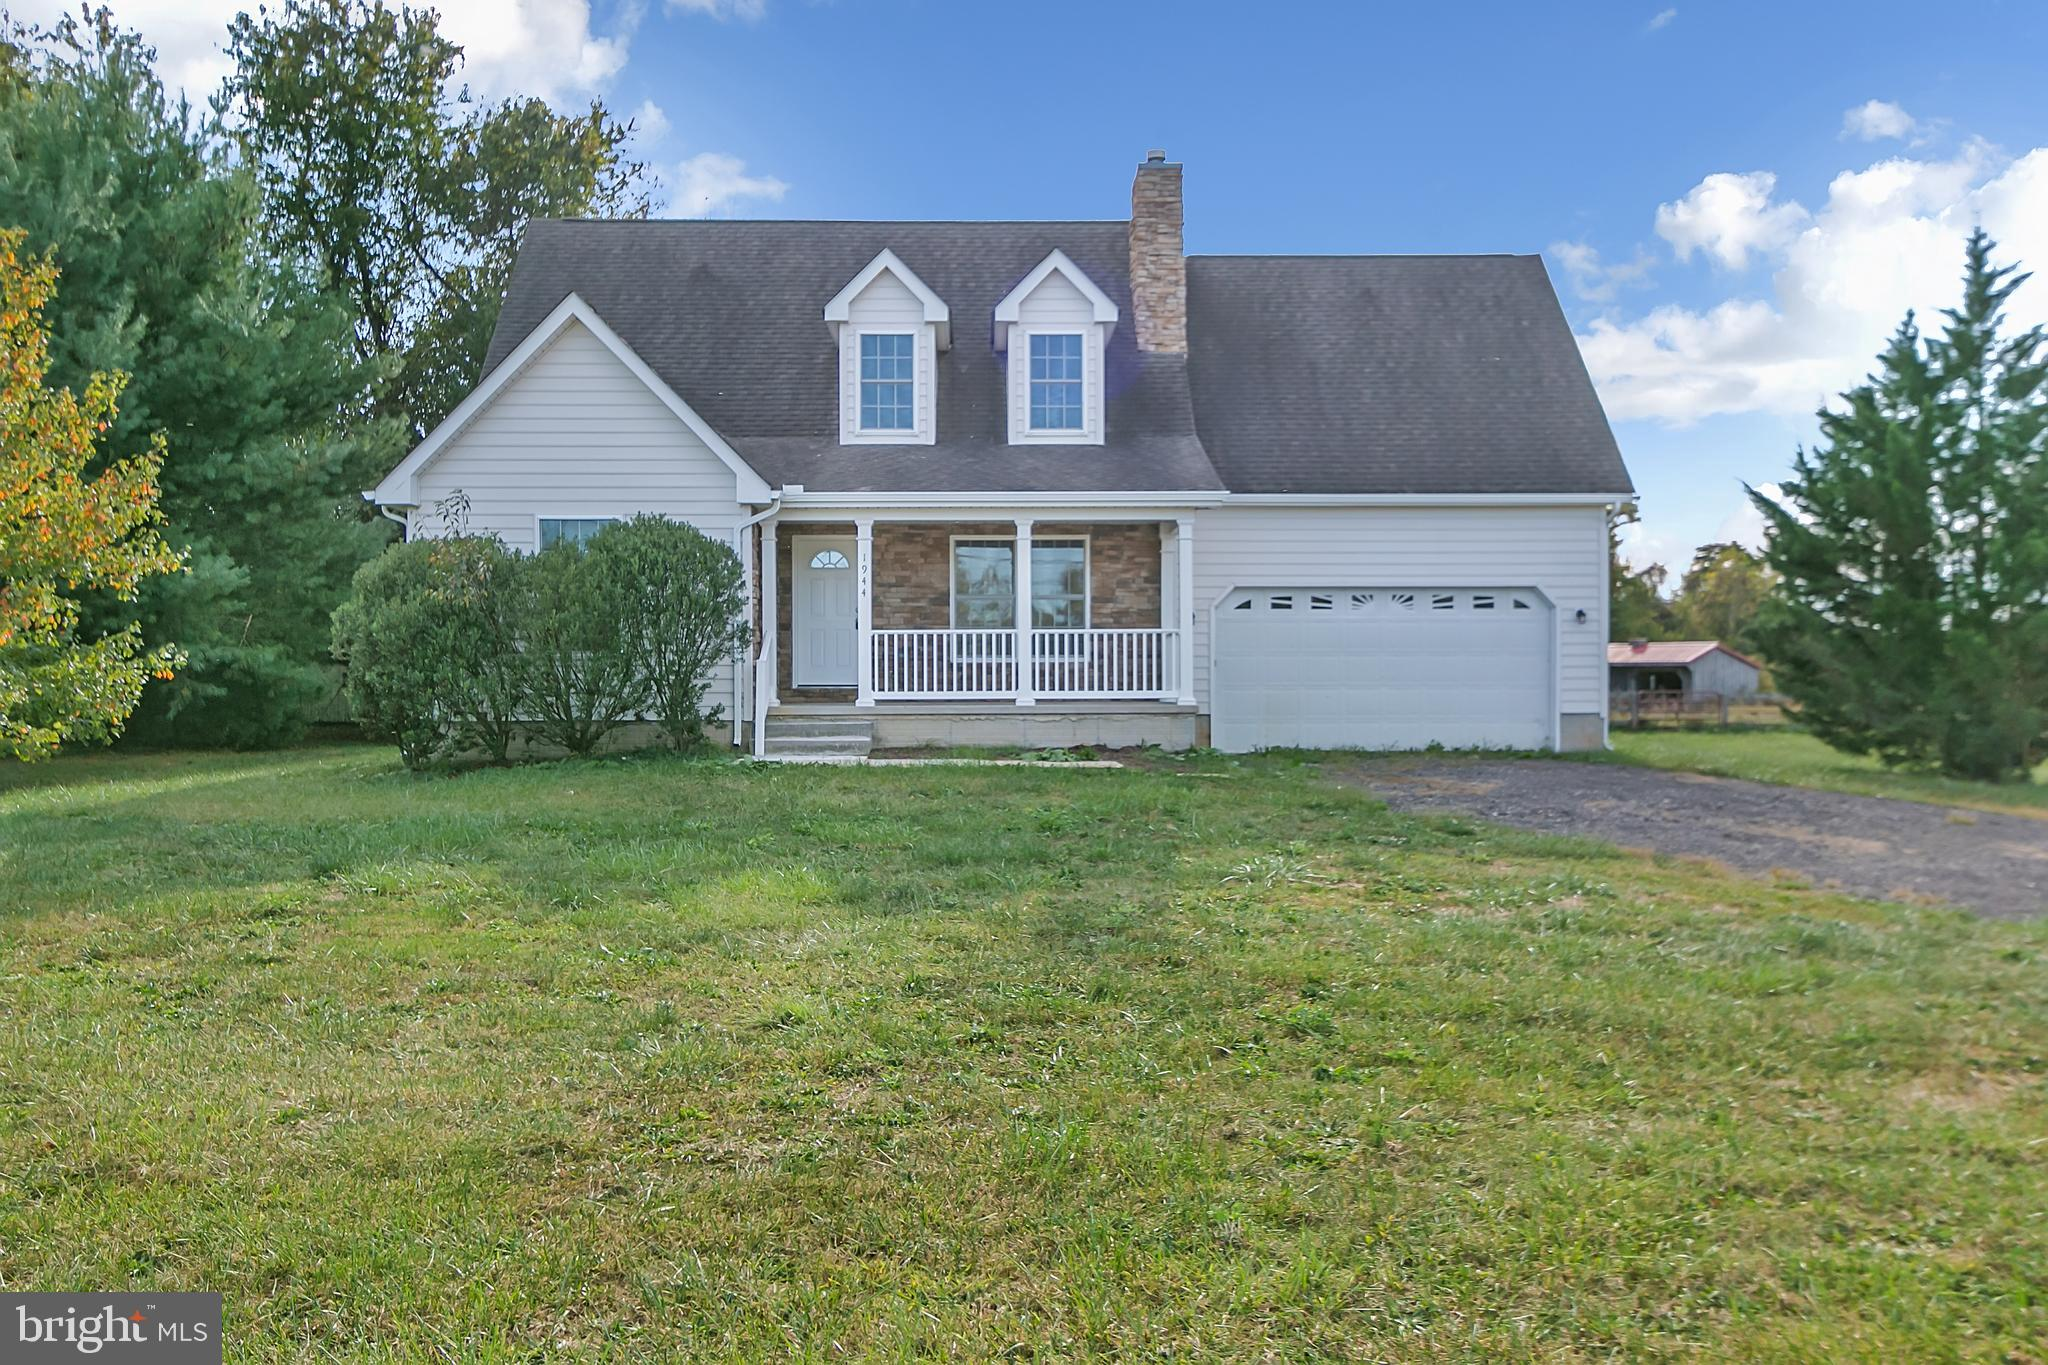 Lovely Cape Cod with front porch, 2-car garage,  deck, fireplace and unfinished basement. House is i